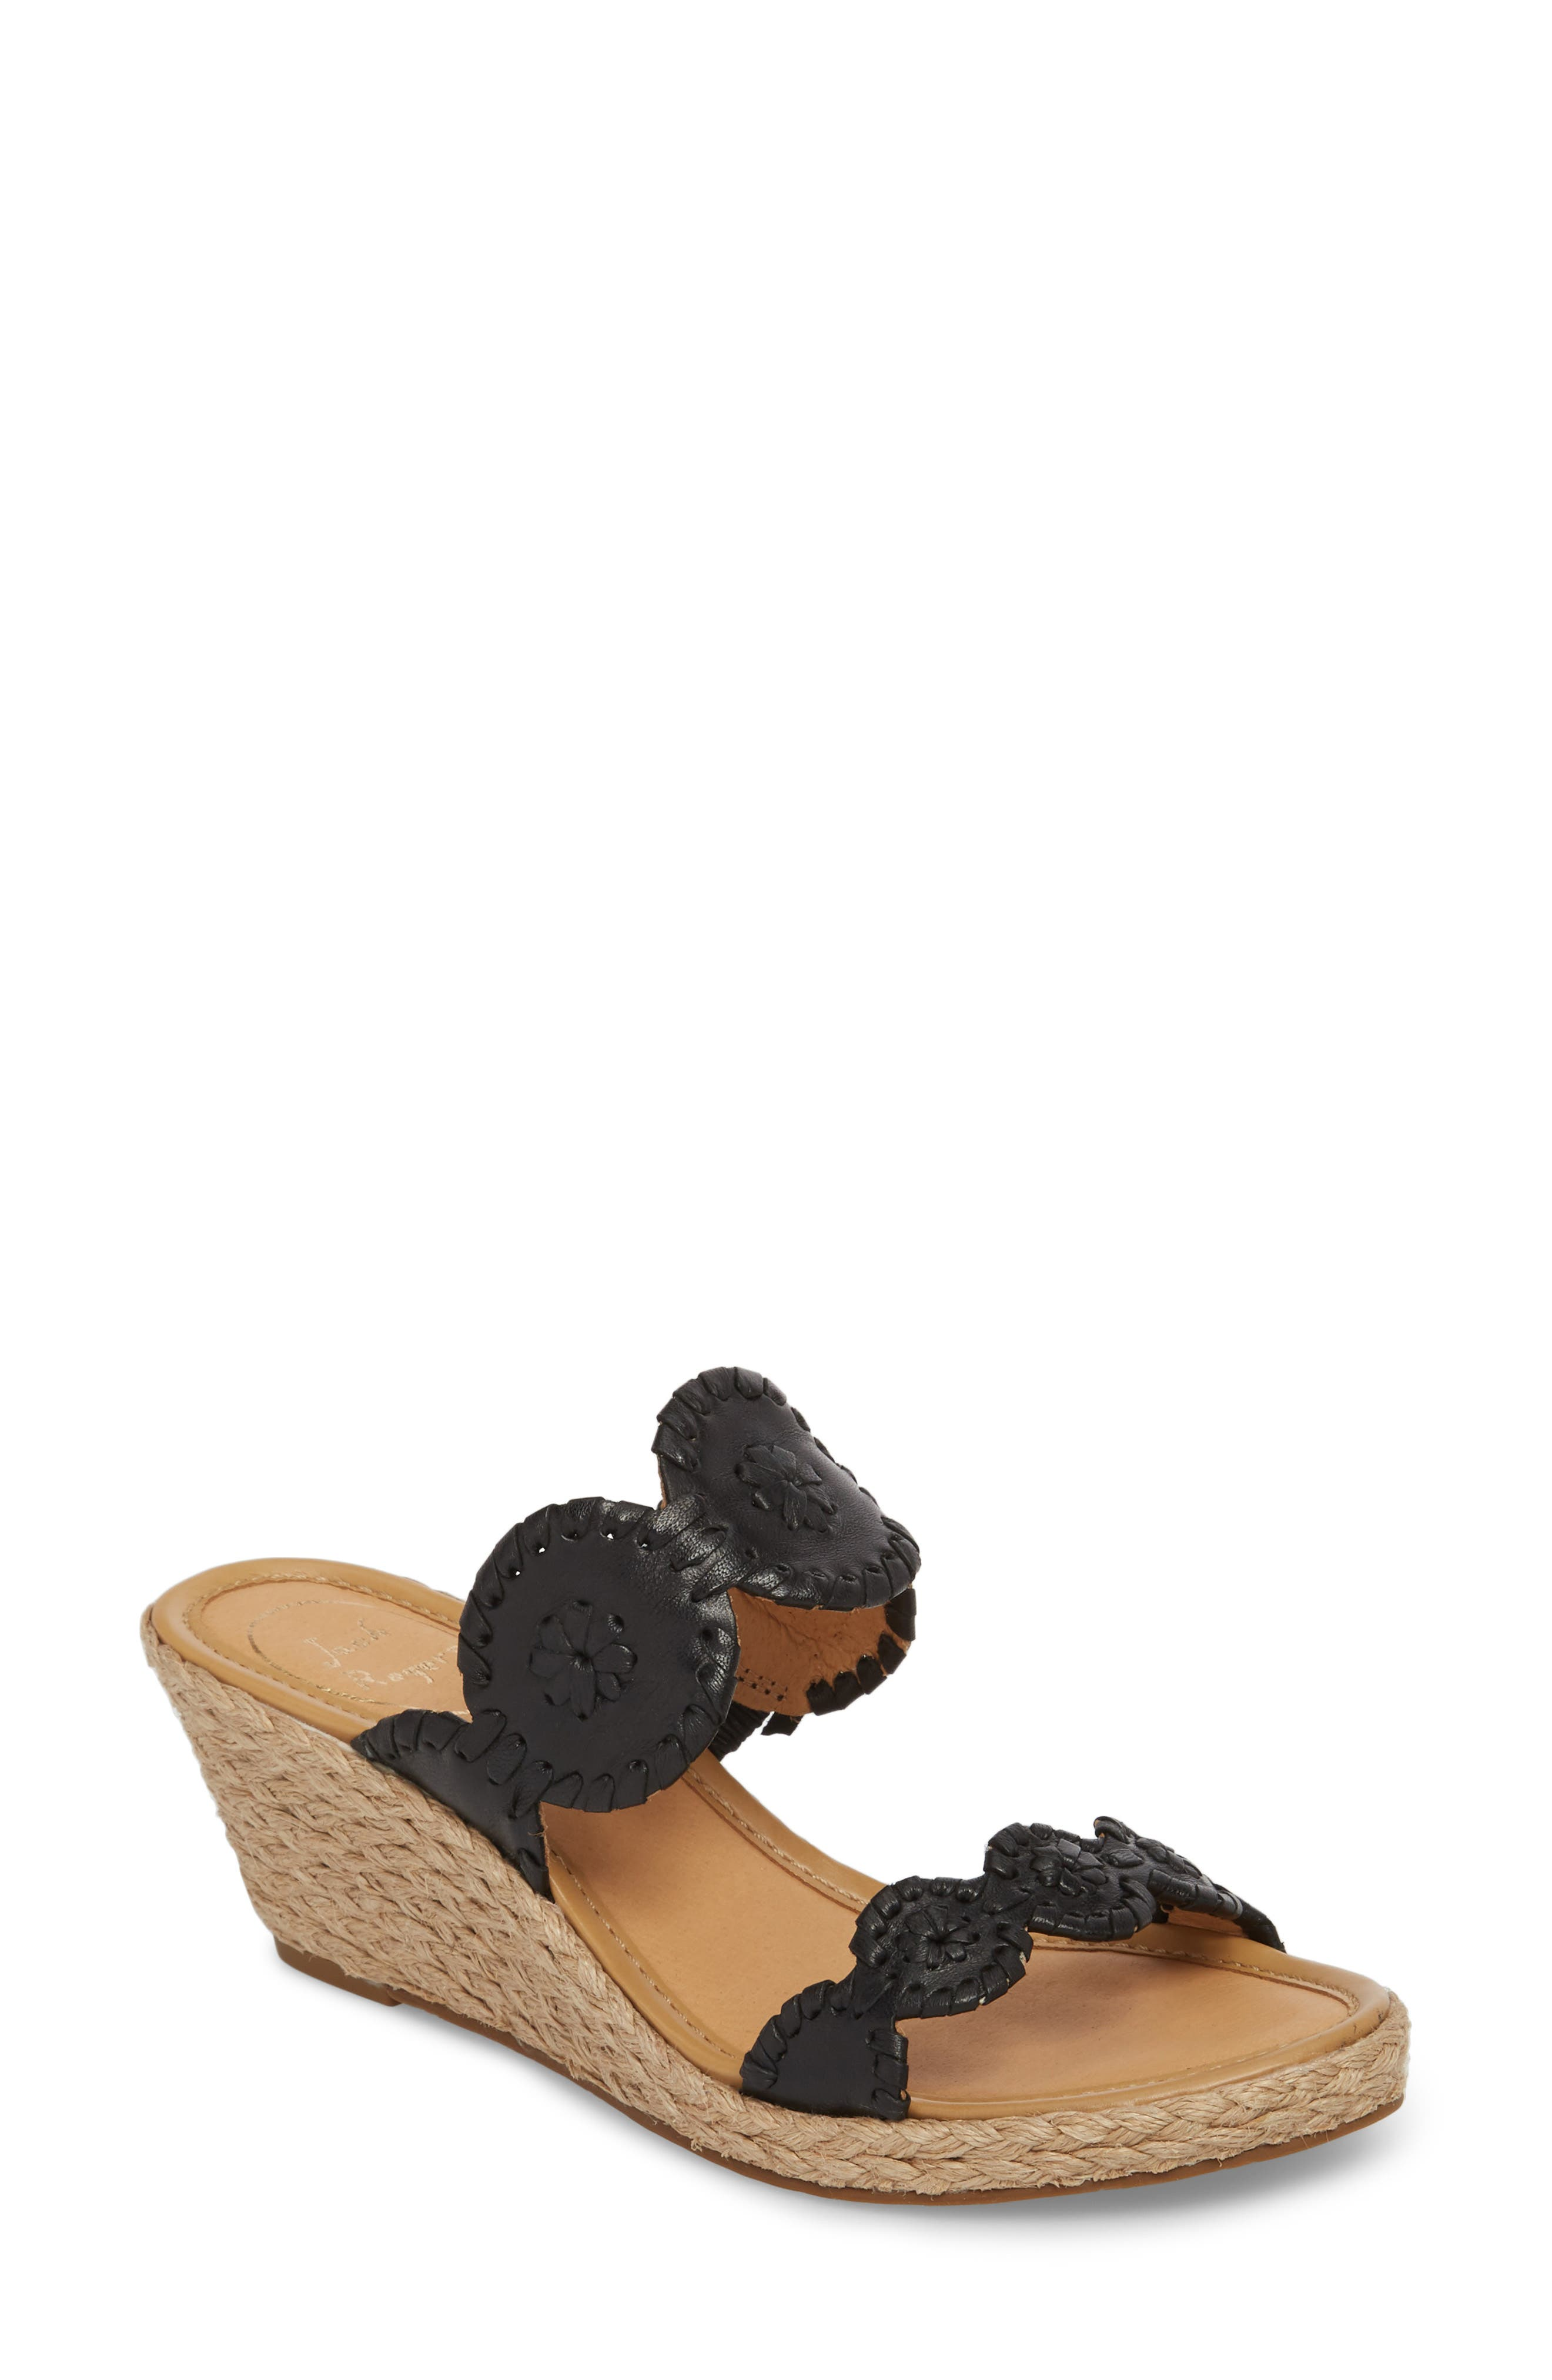 'Shelby' Whipstitched Wedge Sandal,                             Main thumbnail 1, color,                             Black Leather